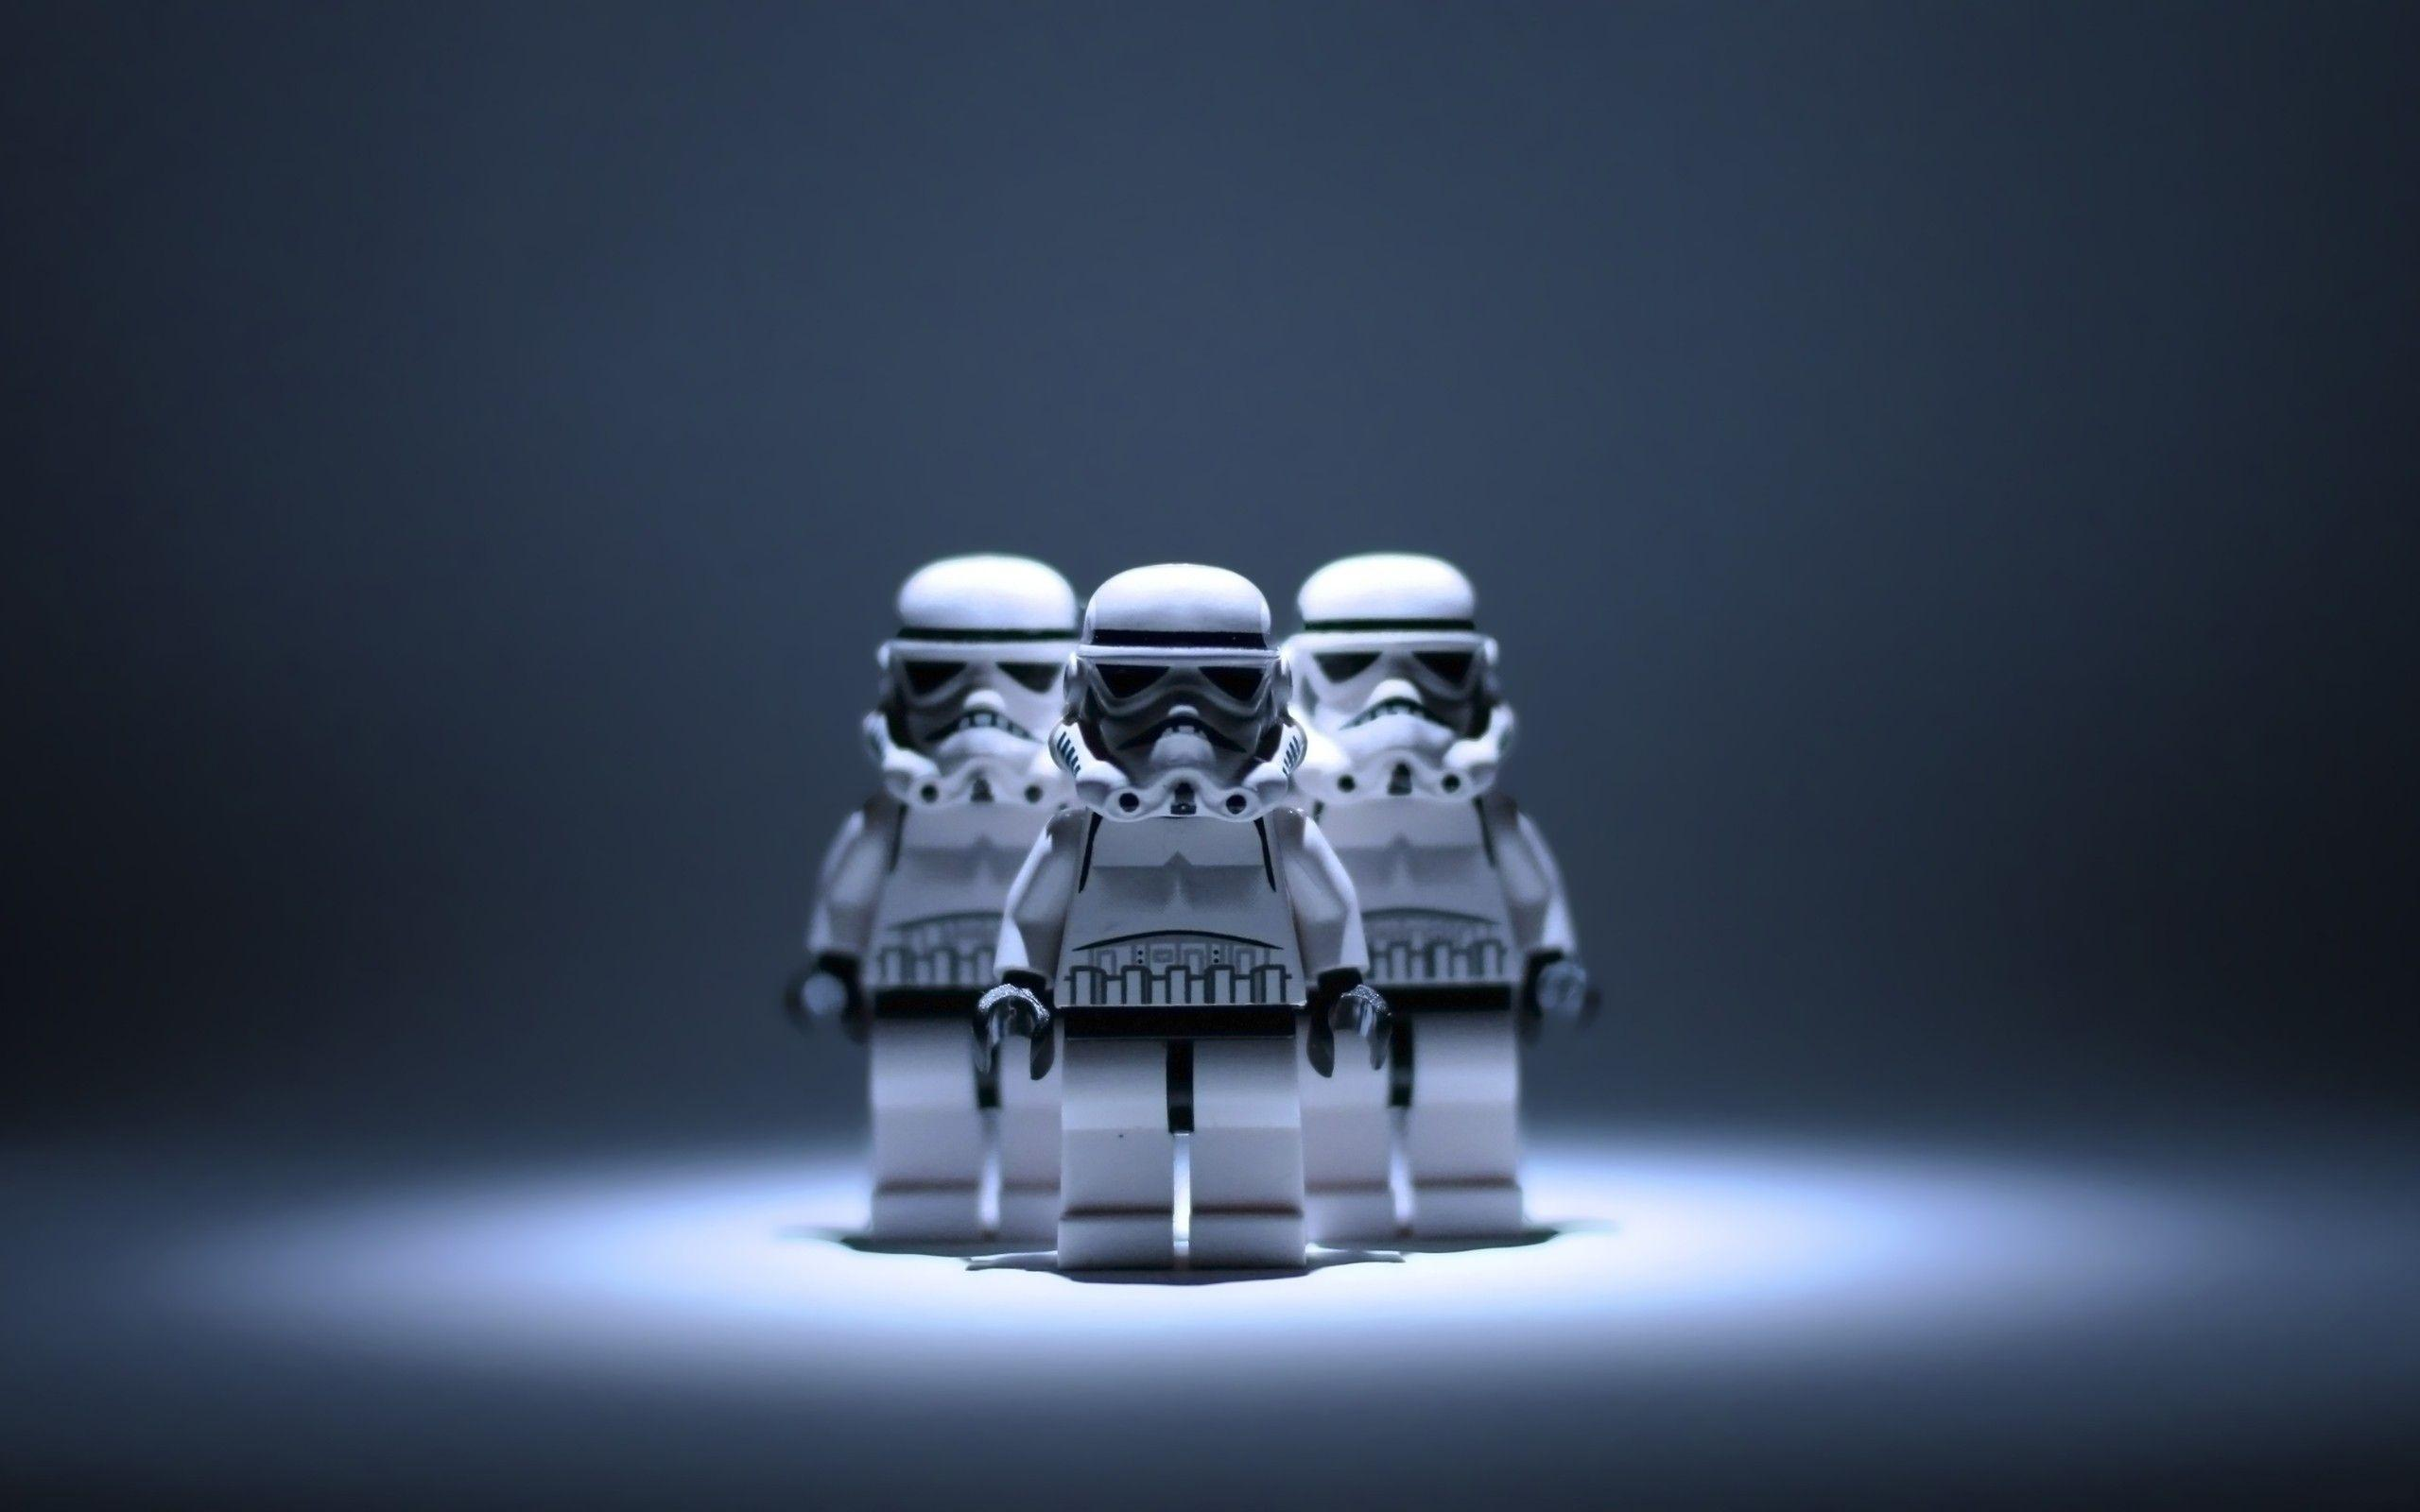 Lego Star Wars Wallpapers - Full HD wallpaper search